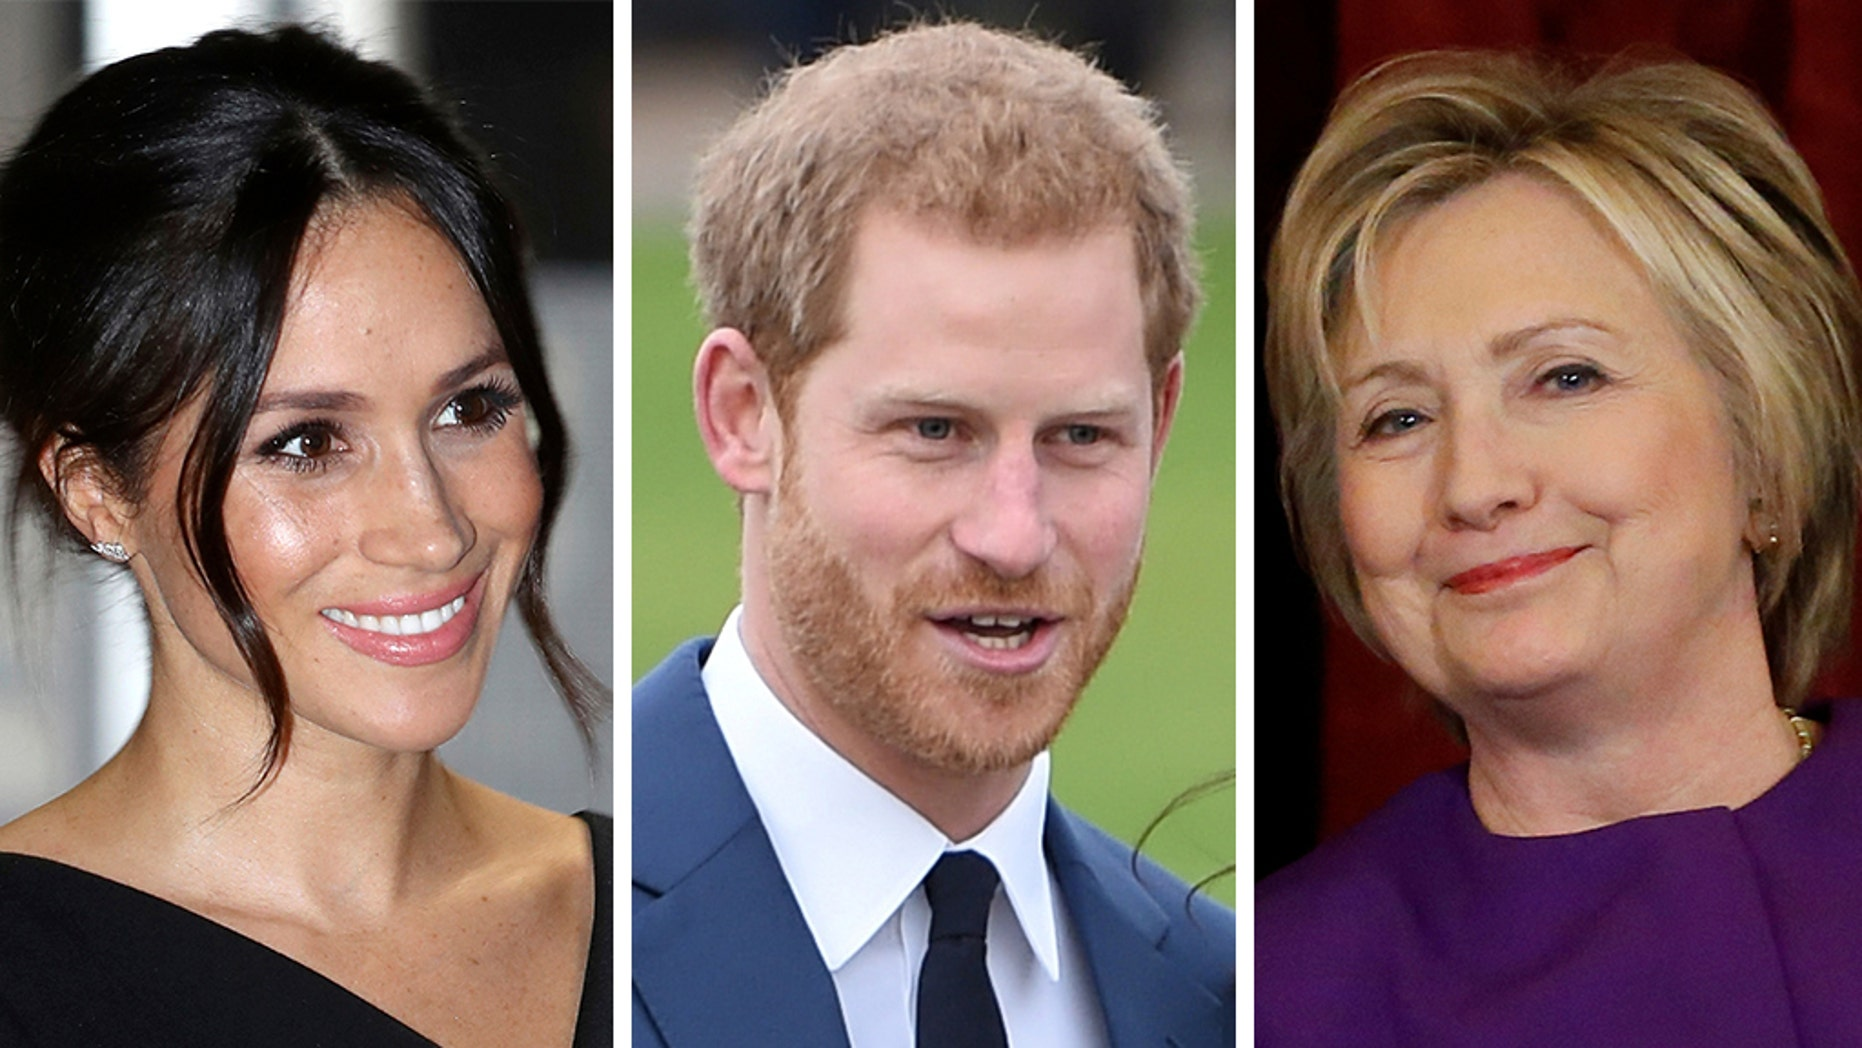 Meghan Markle and Prince Harry have hired Hillary Clinton's former presidential campaign senior adviser to head their communications team